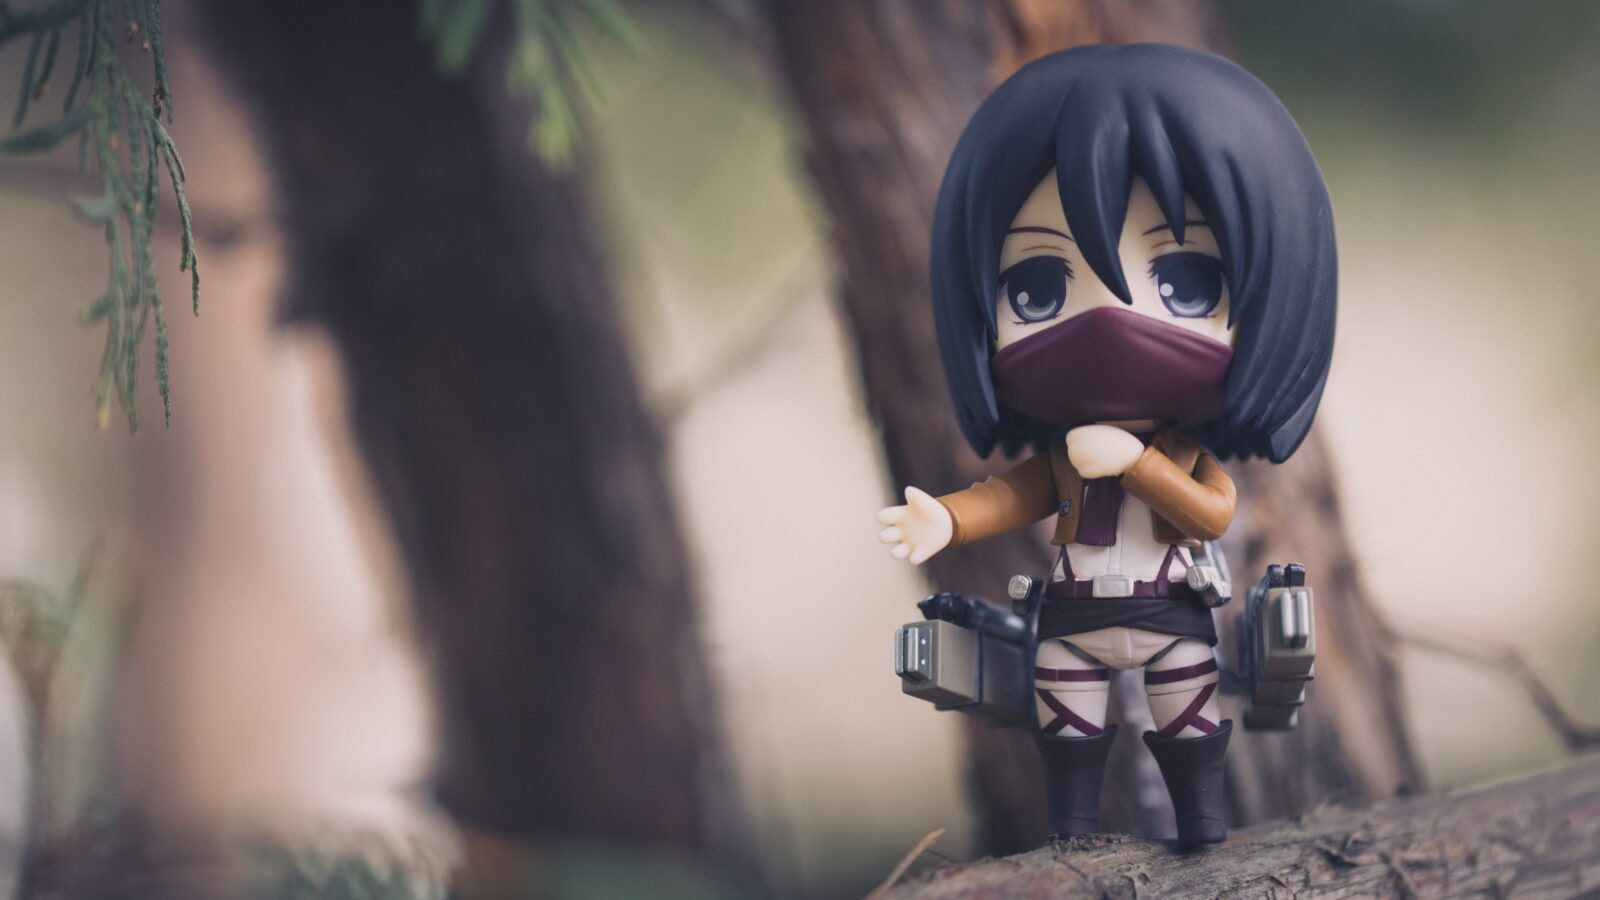 28 Wallpaper Anime Hd Mikasa Orochi Wallpaper